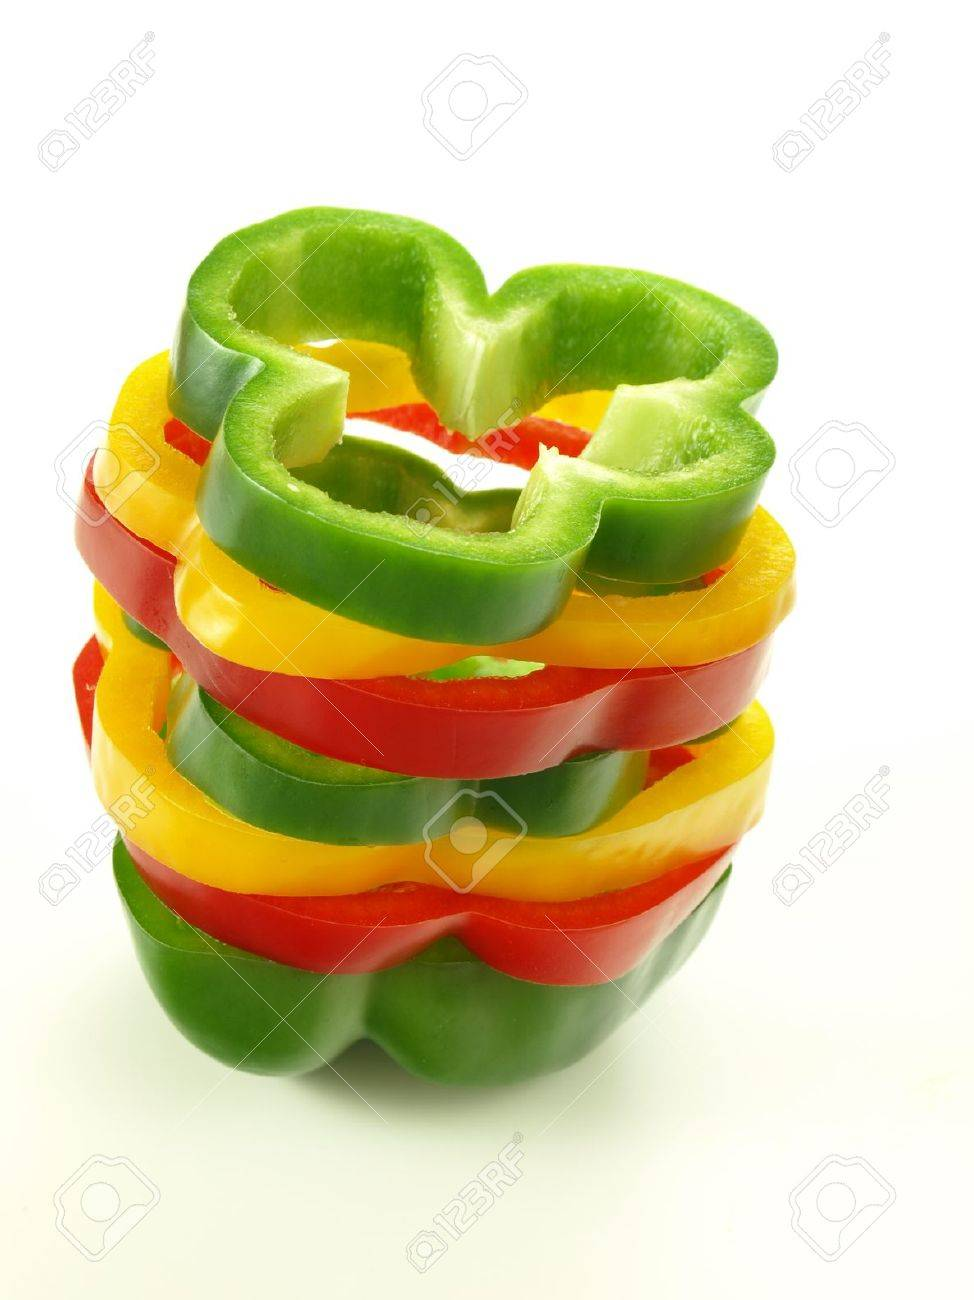 Tri-color sliced pepper on isolated white background Stock Photo - 14974509